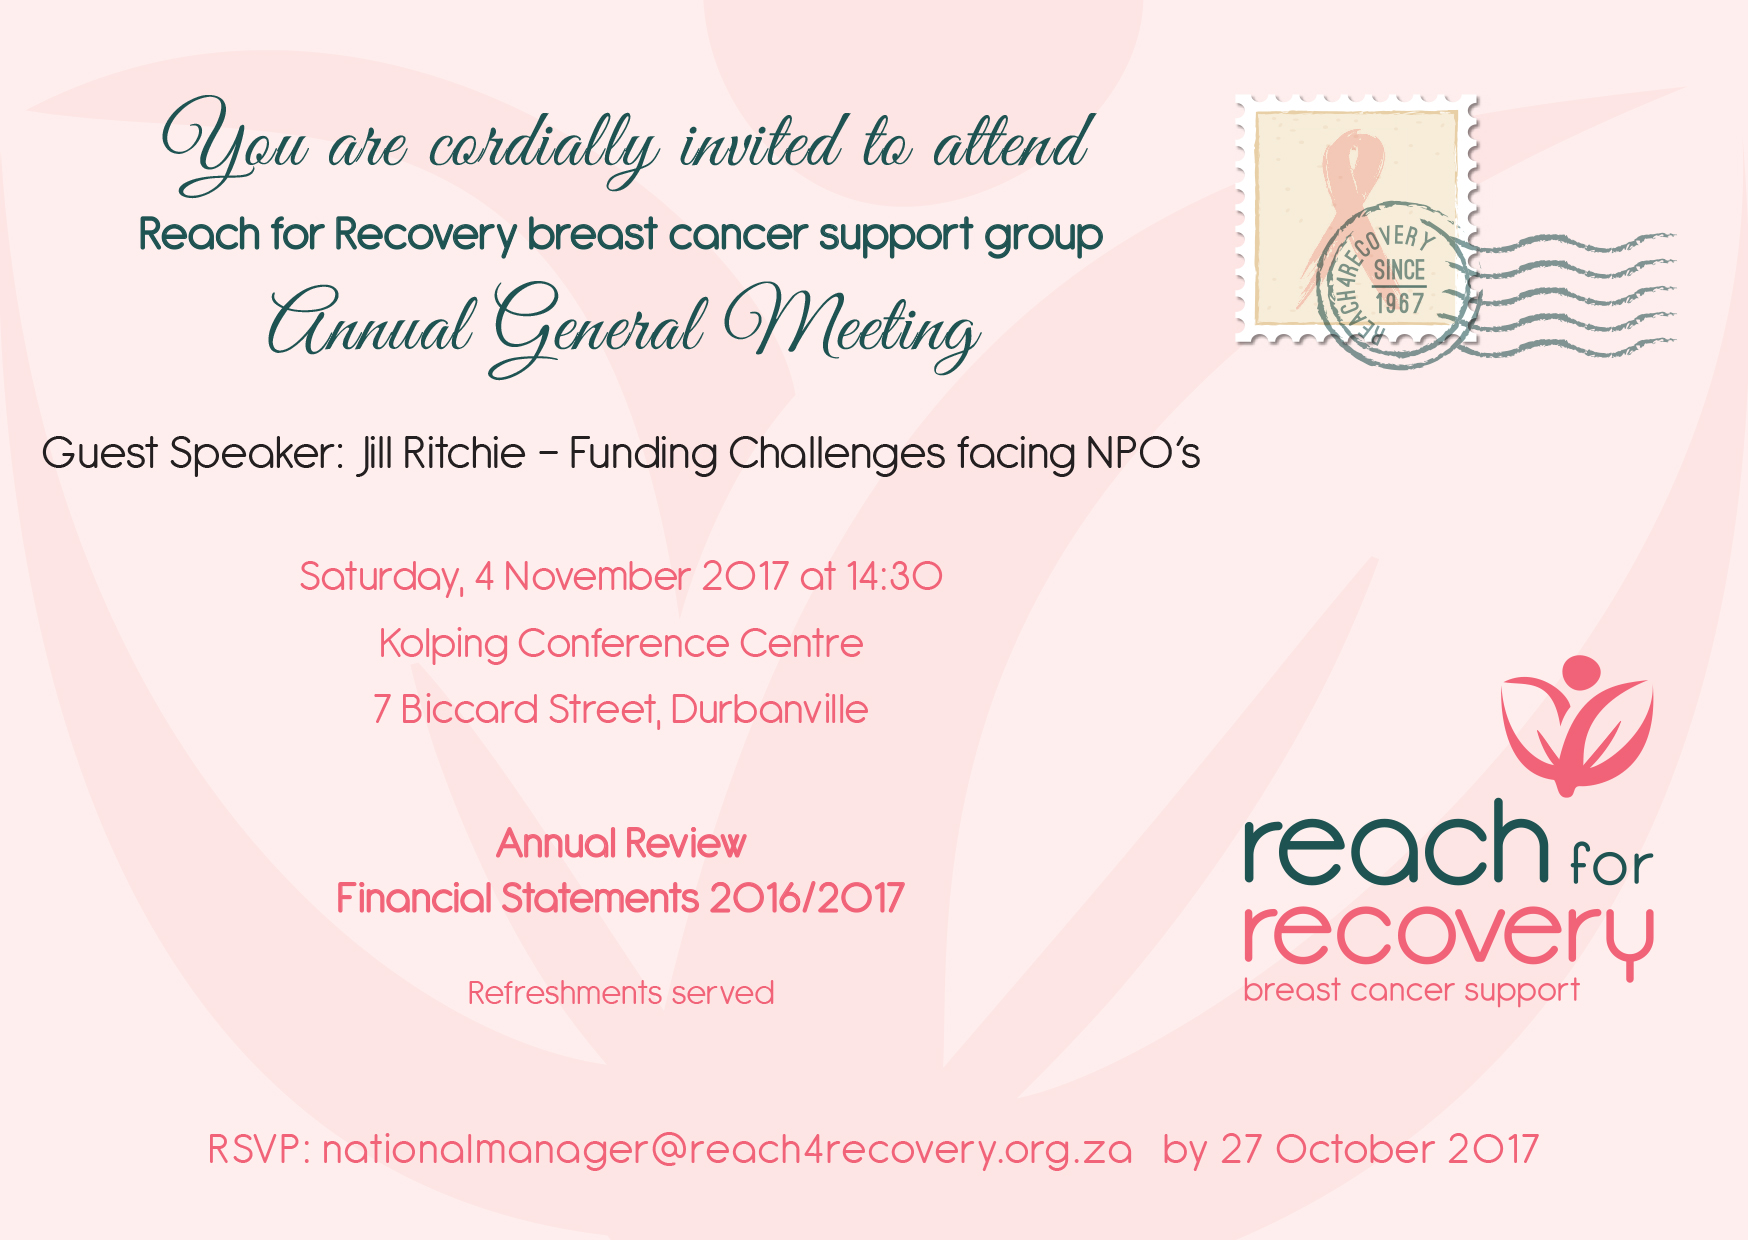 Reach-for-Recovery-AGM-Invite-2017